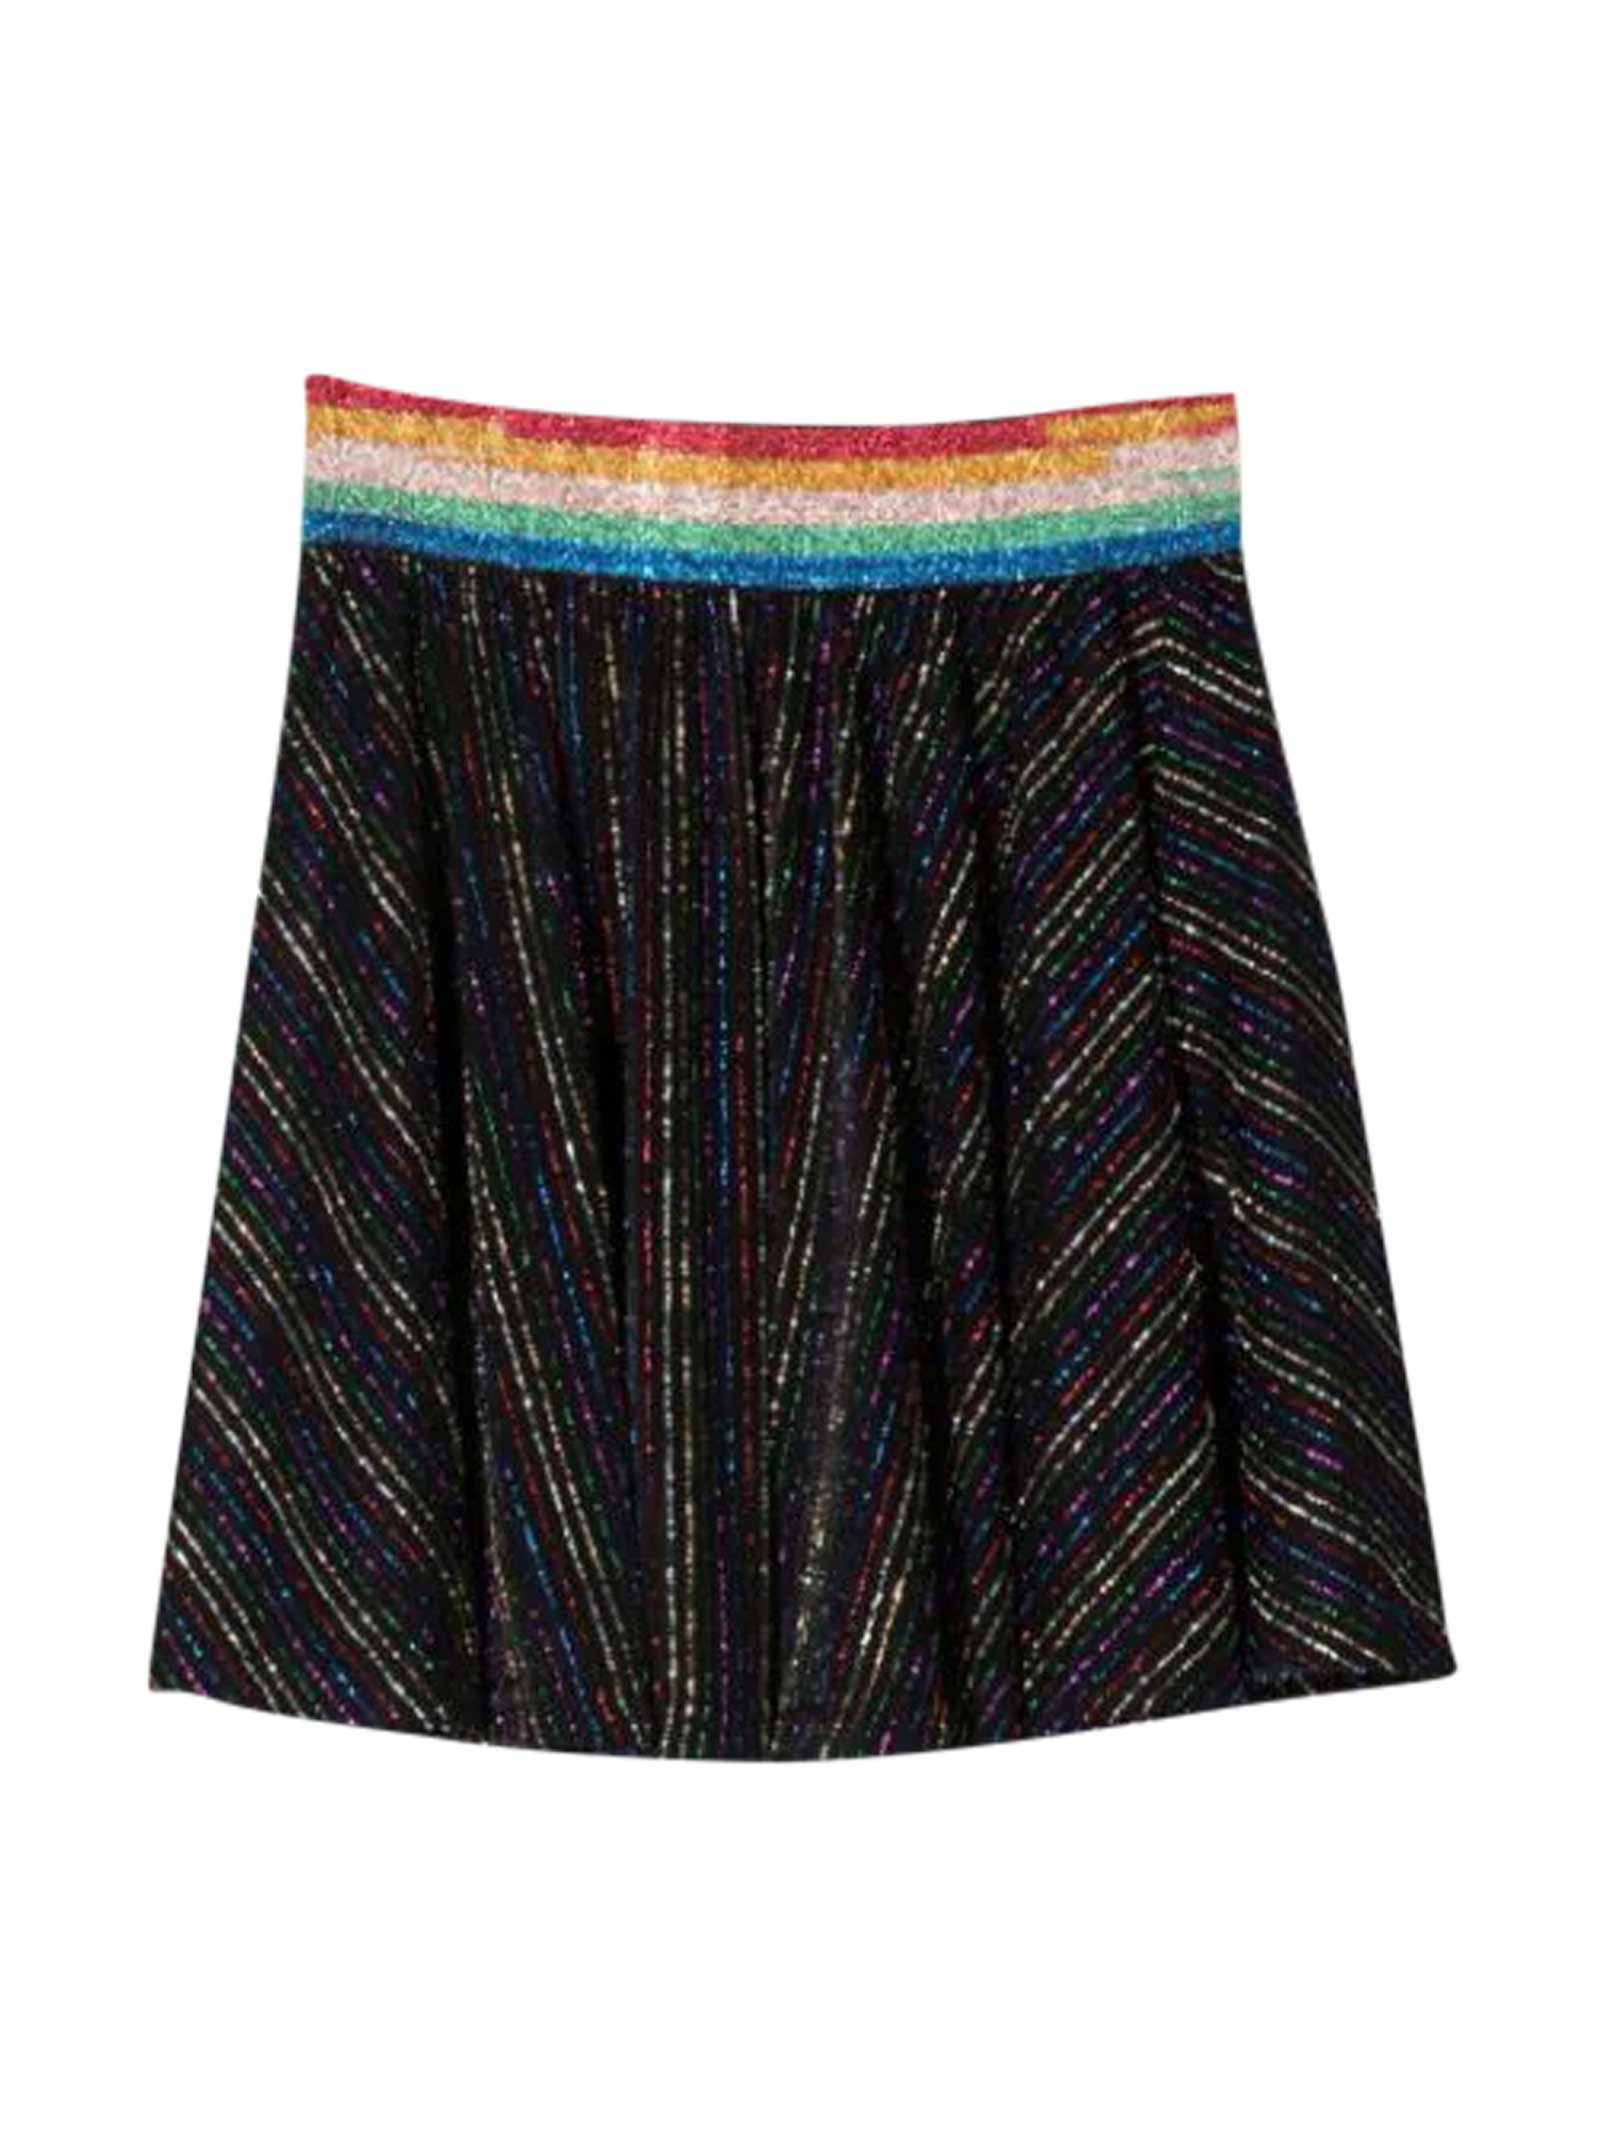 Sonia Rykiel Enfant Teen Black Skirt